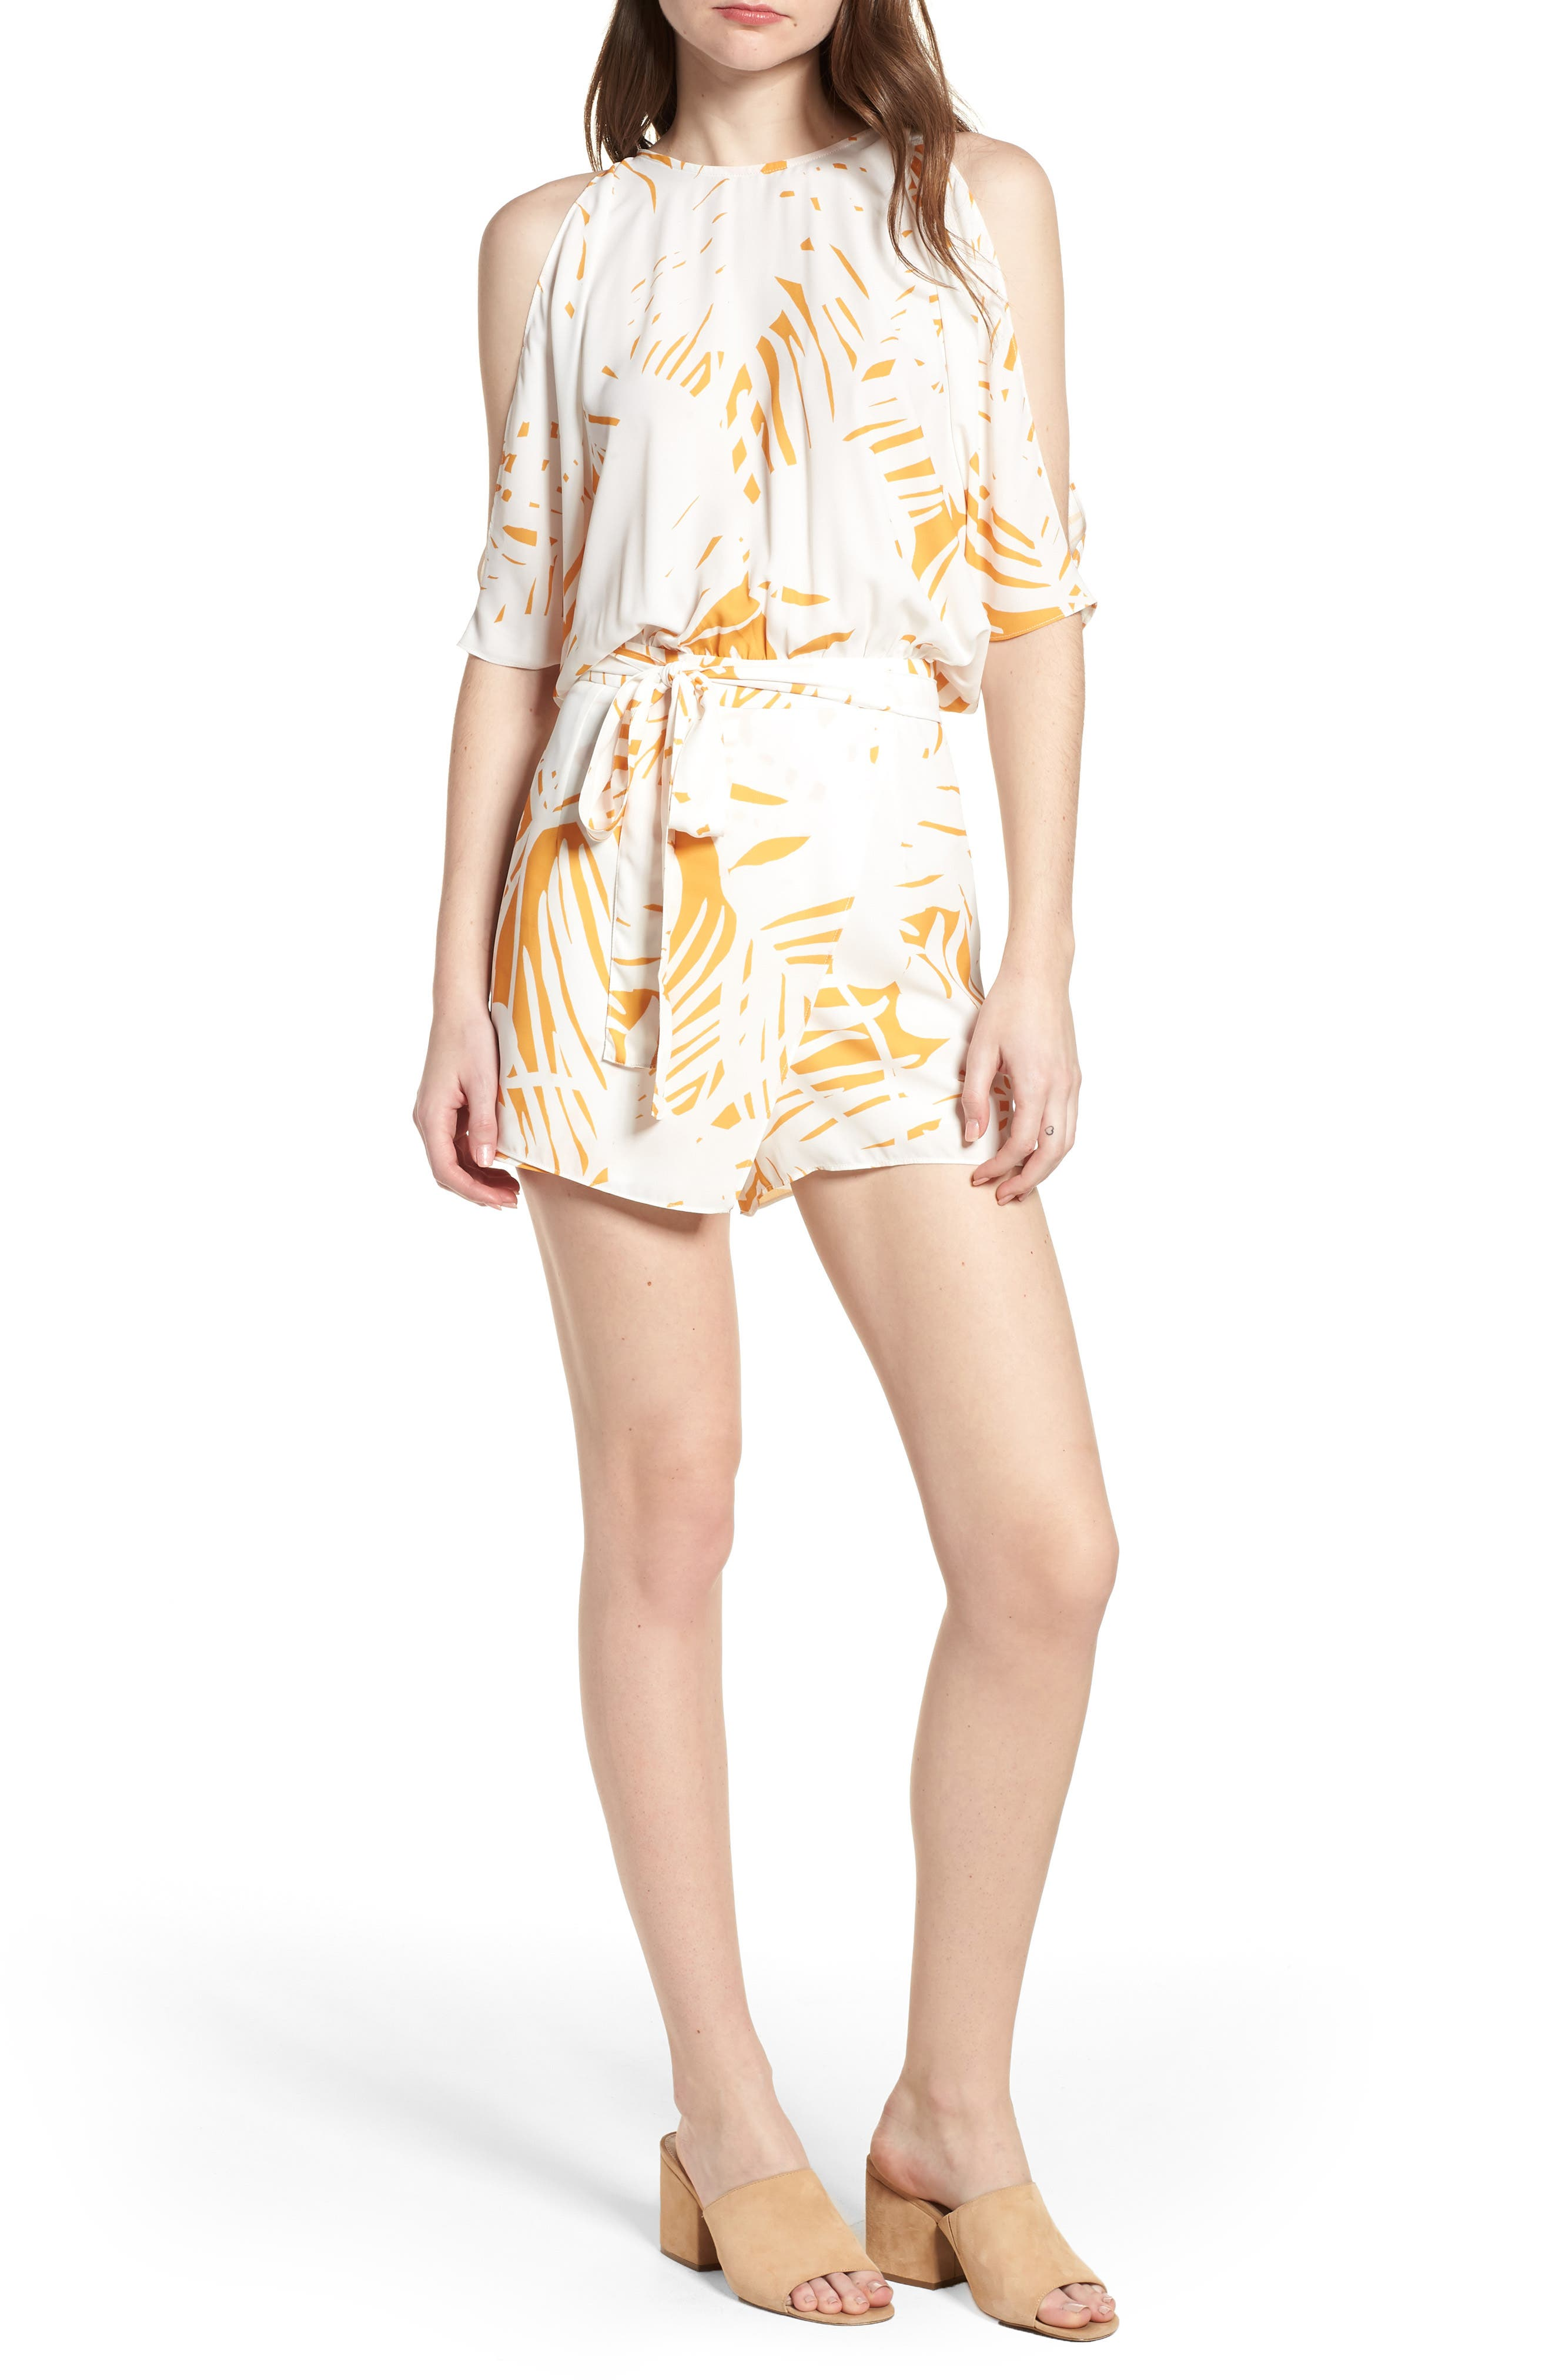 Bishop + Young Jet Set Cold Shoulder Romper,                             Main thumbnail 1, color,                             Riviera Print